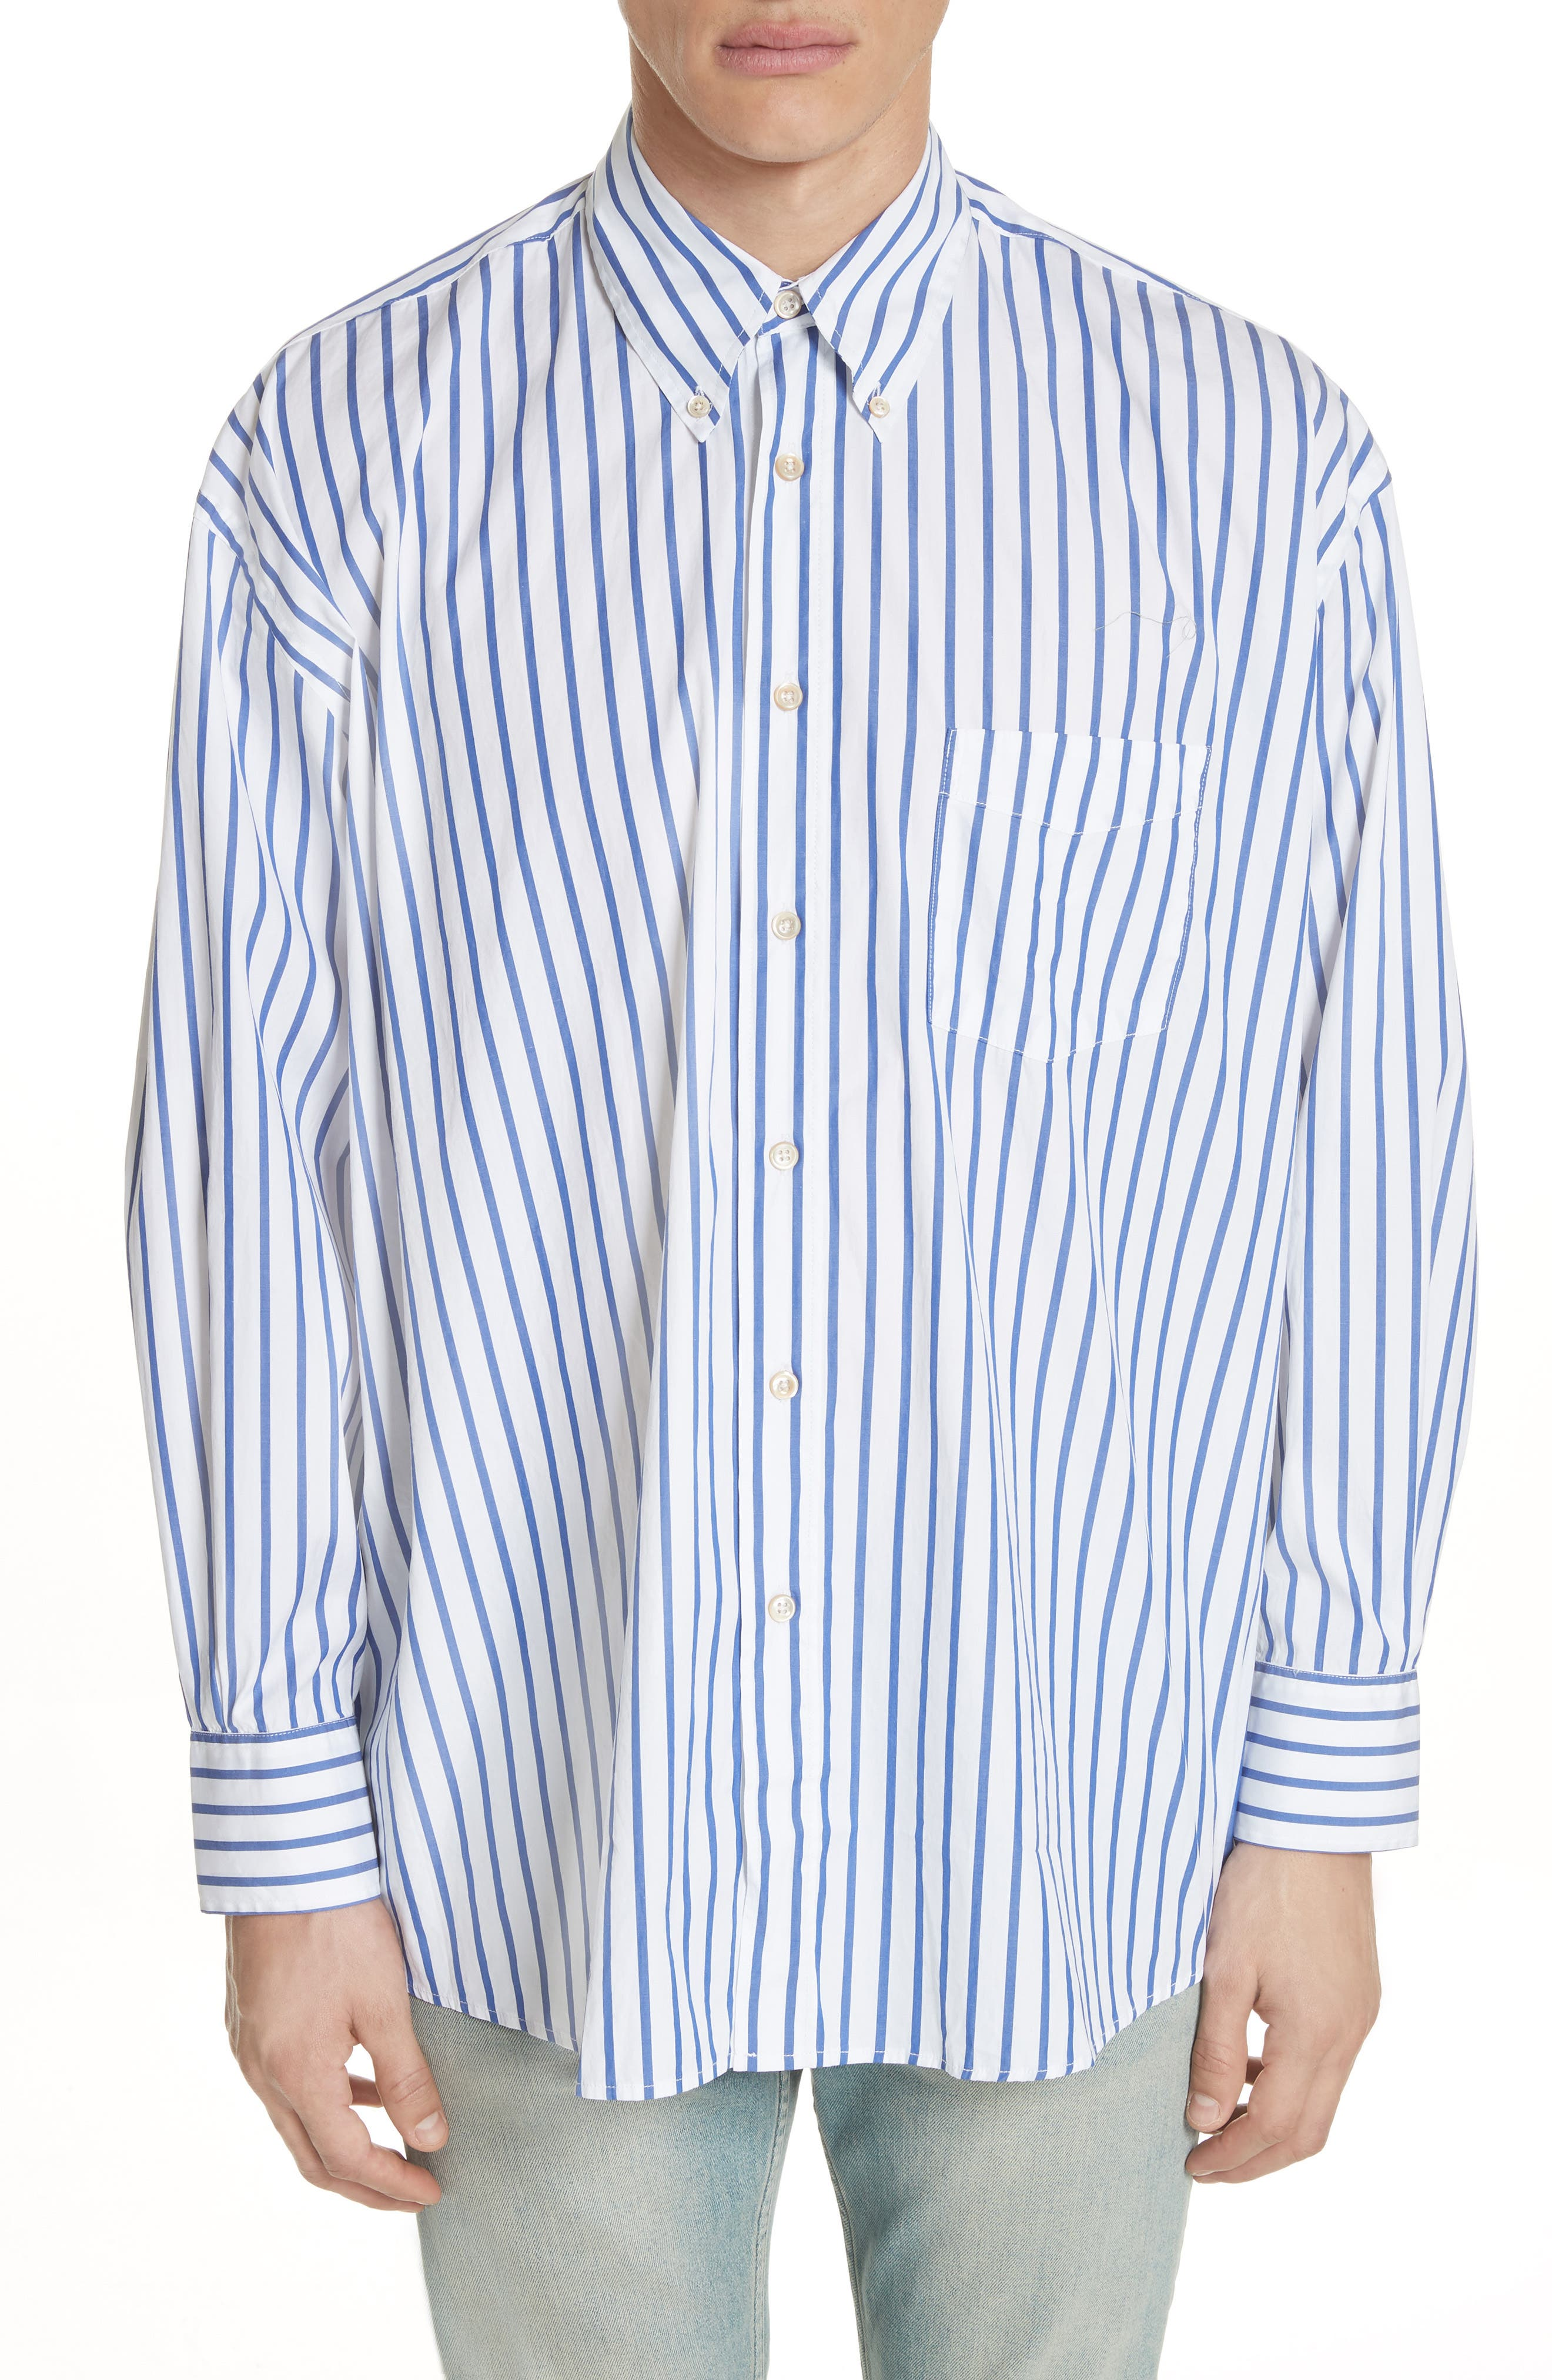 Alternate Image 1 Selected - OUR LEGACY Oversize Stripe Woven Shirt